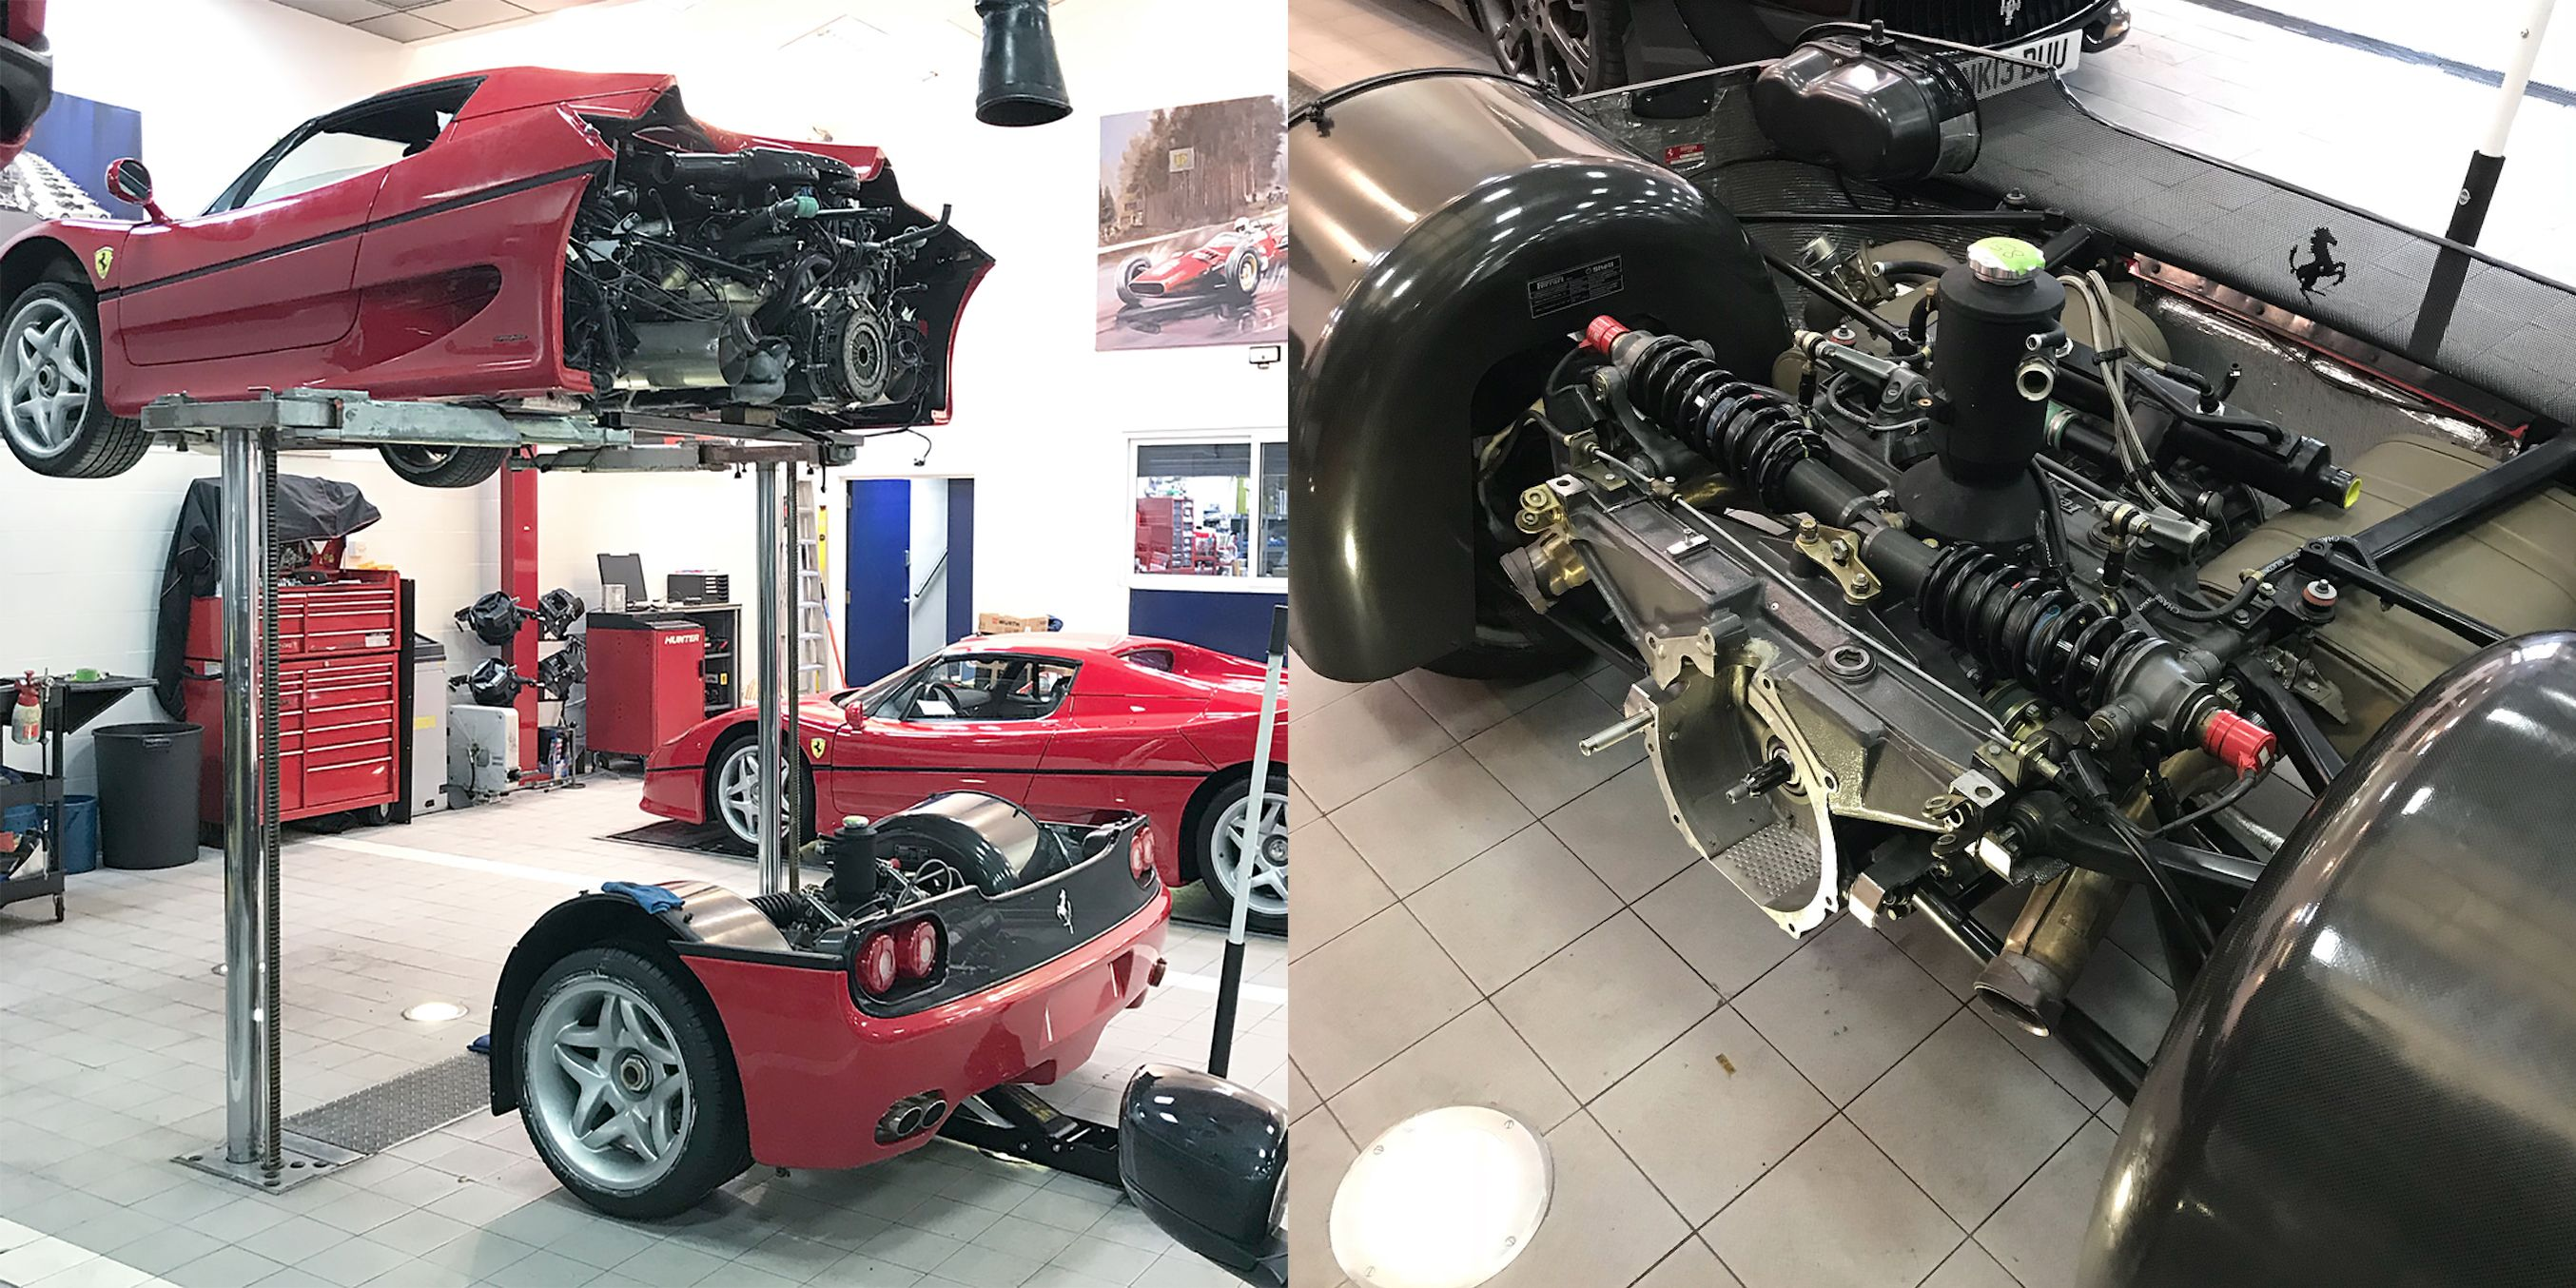 Ferrari F50 Clutch Change How To Pictures And Video